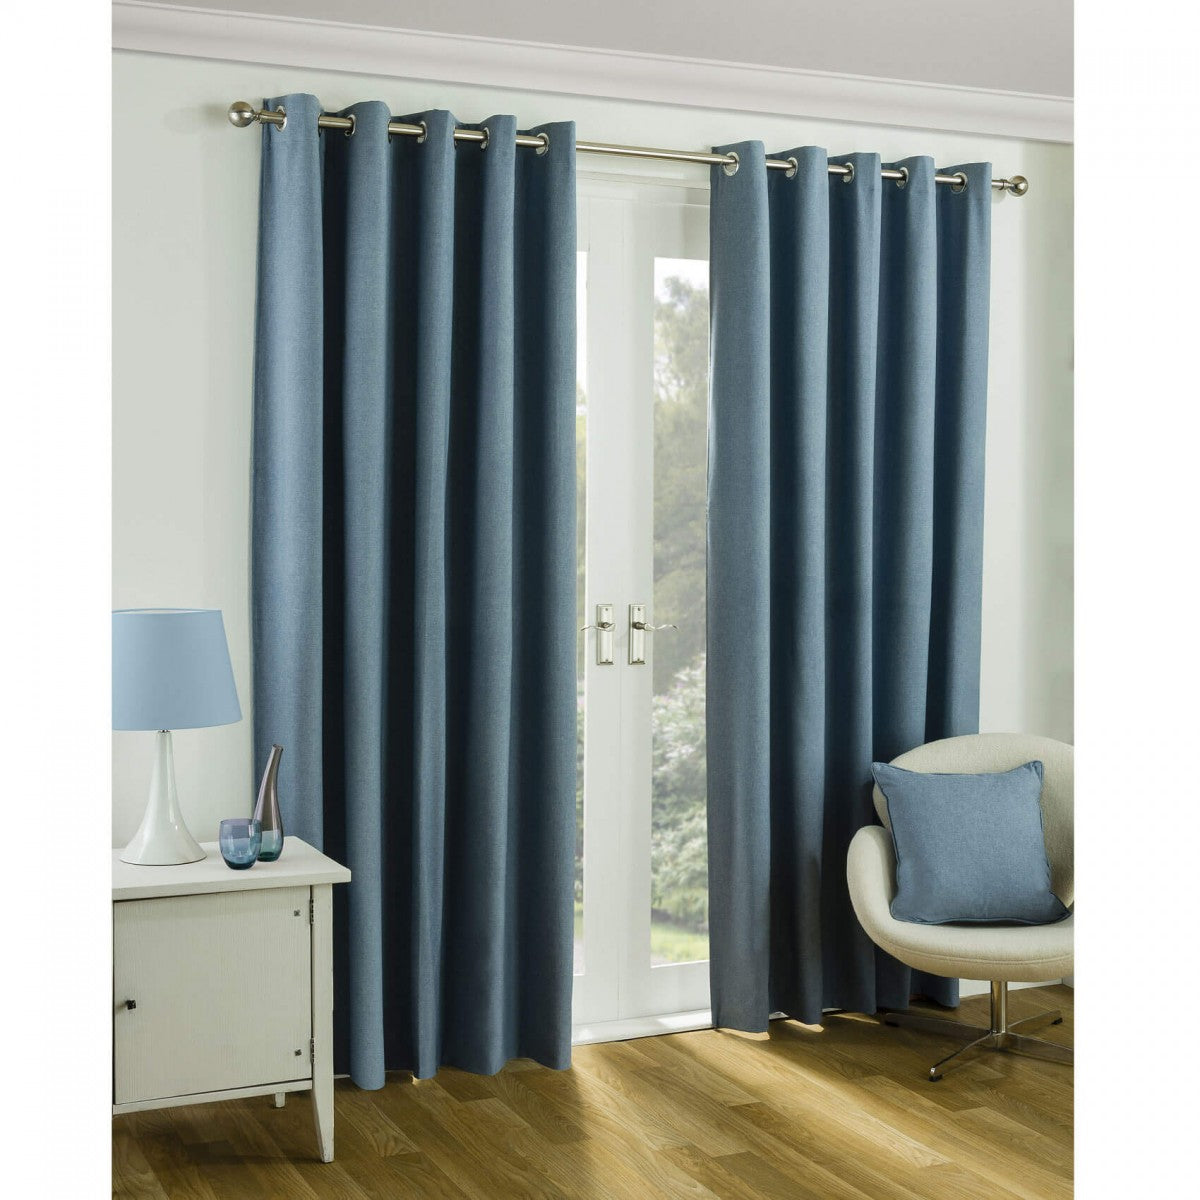 Sundour Twilight Eyelet Blackout Ready Made Curtains - Blue